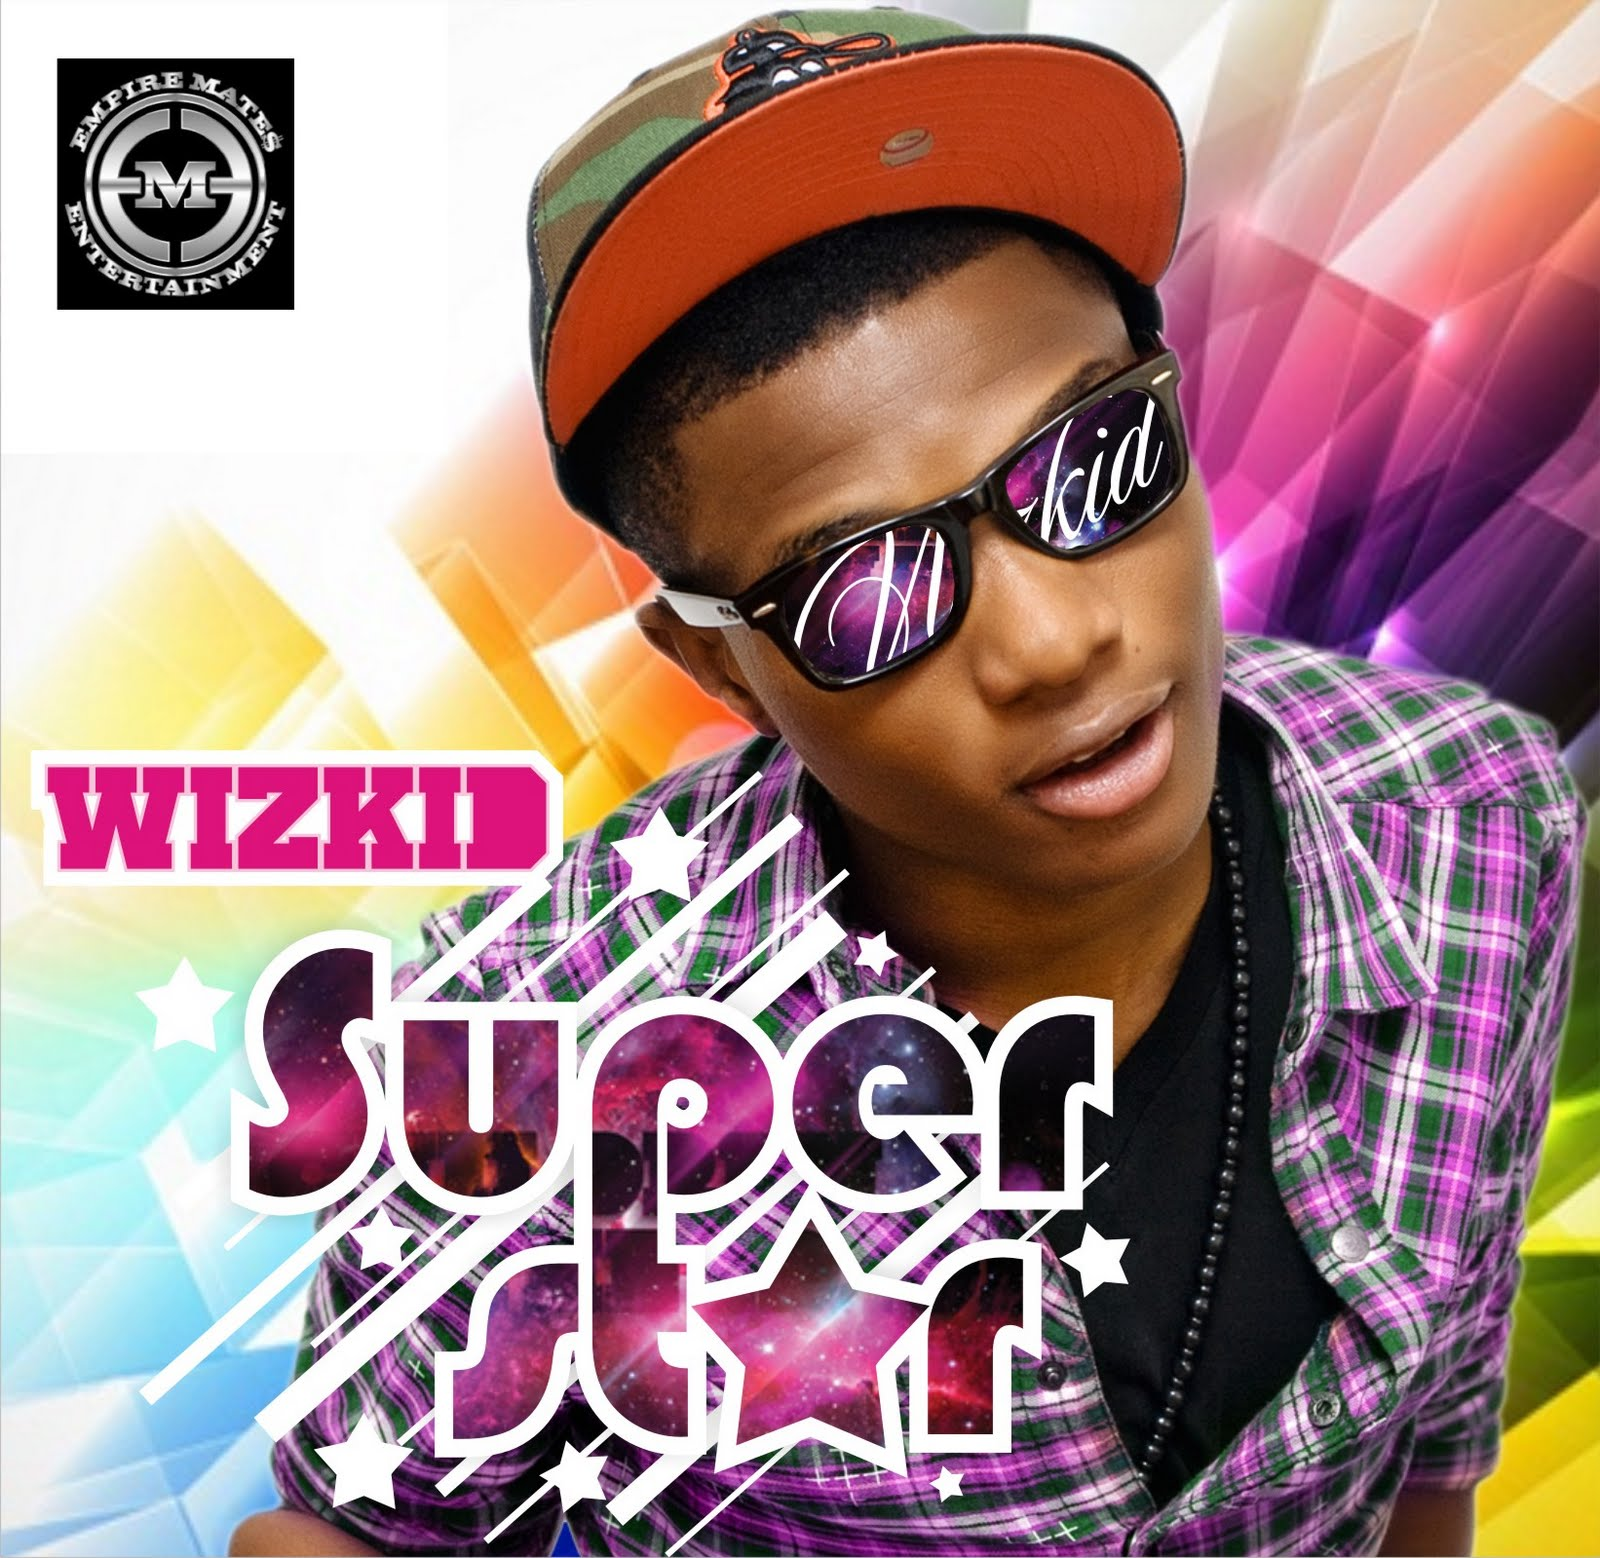 Wizkid Album cover- superstar